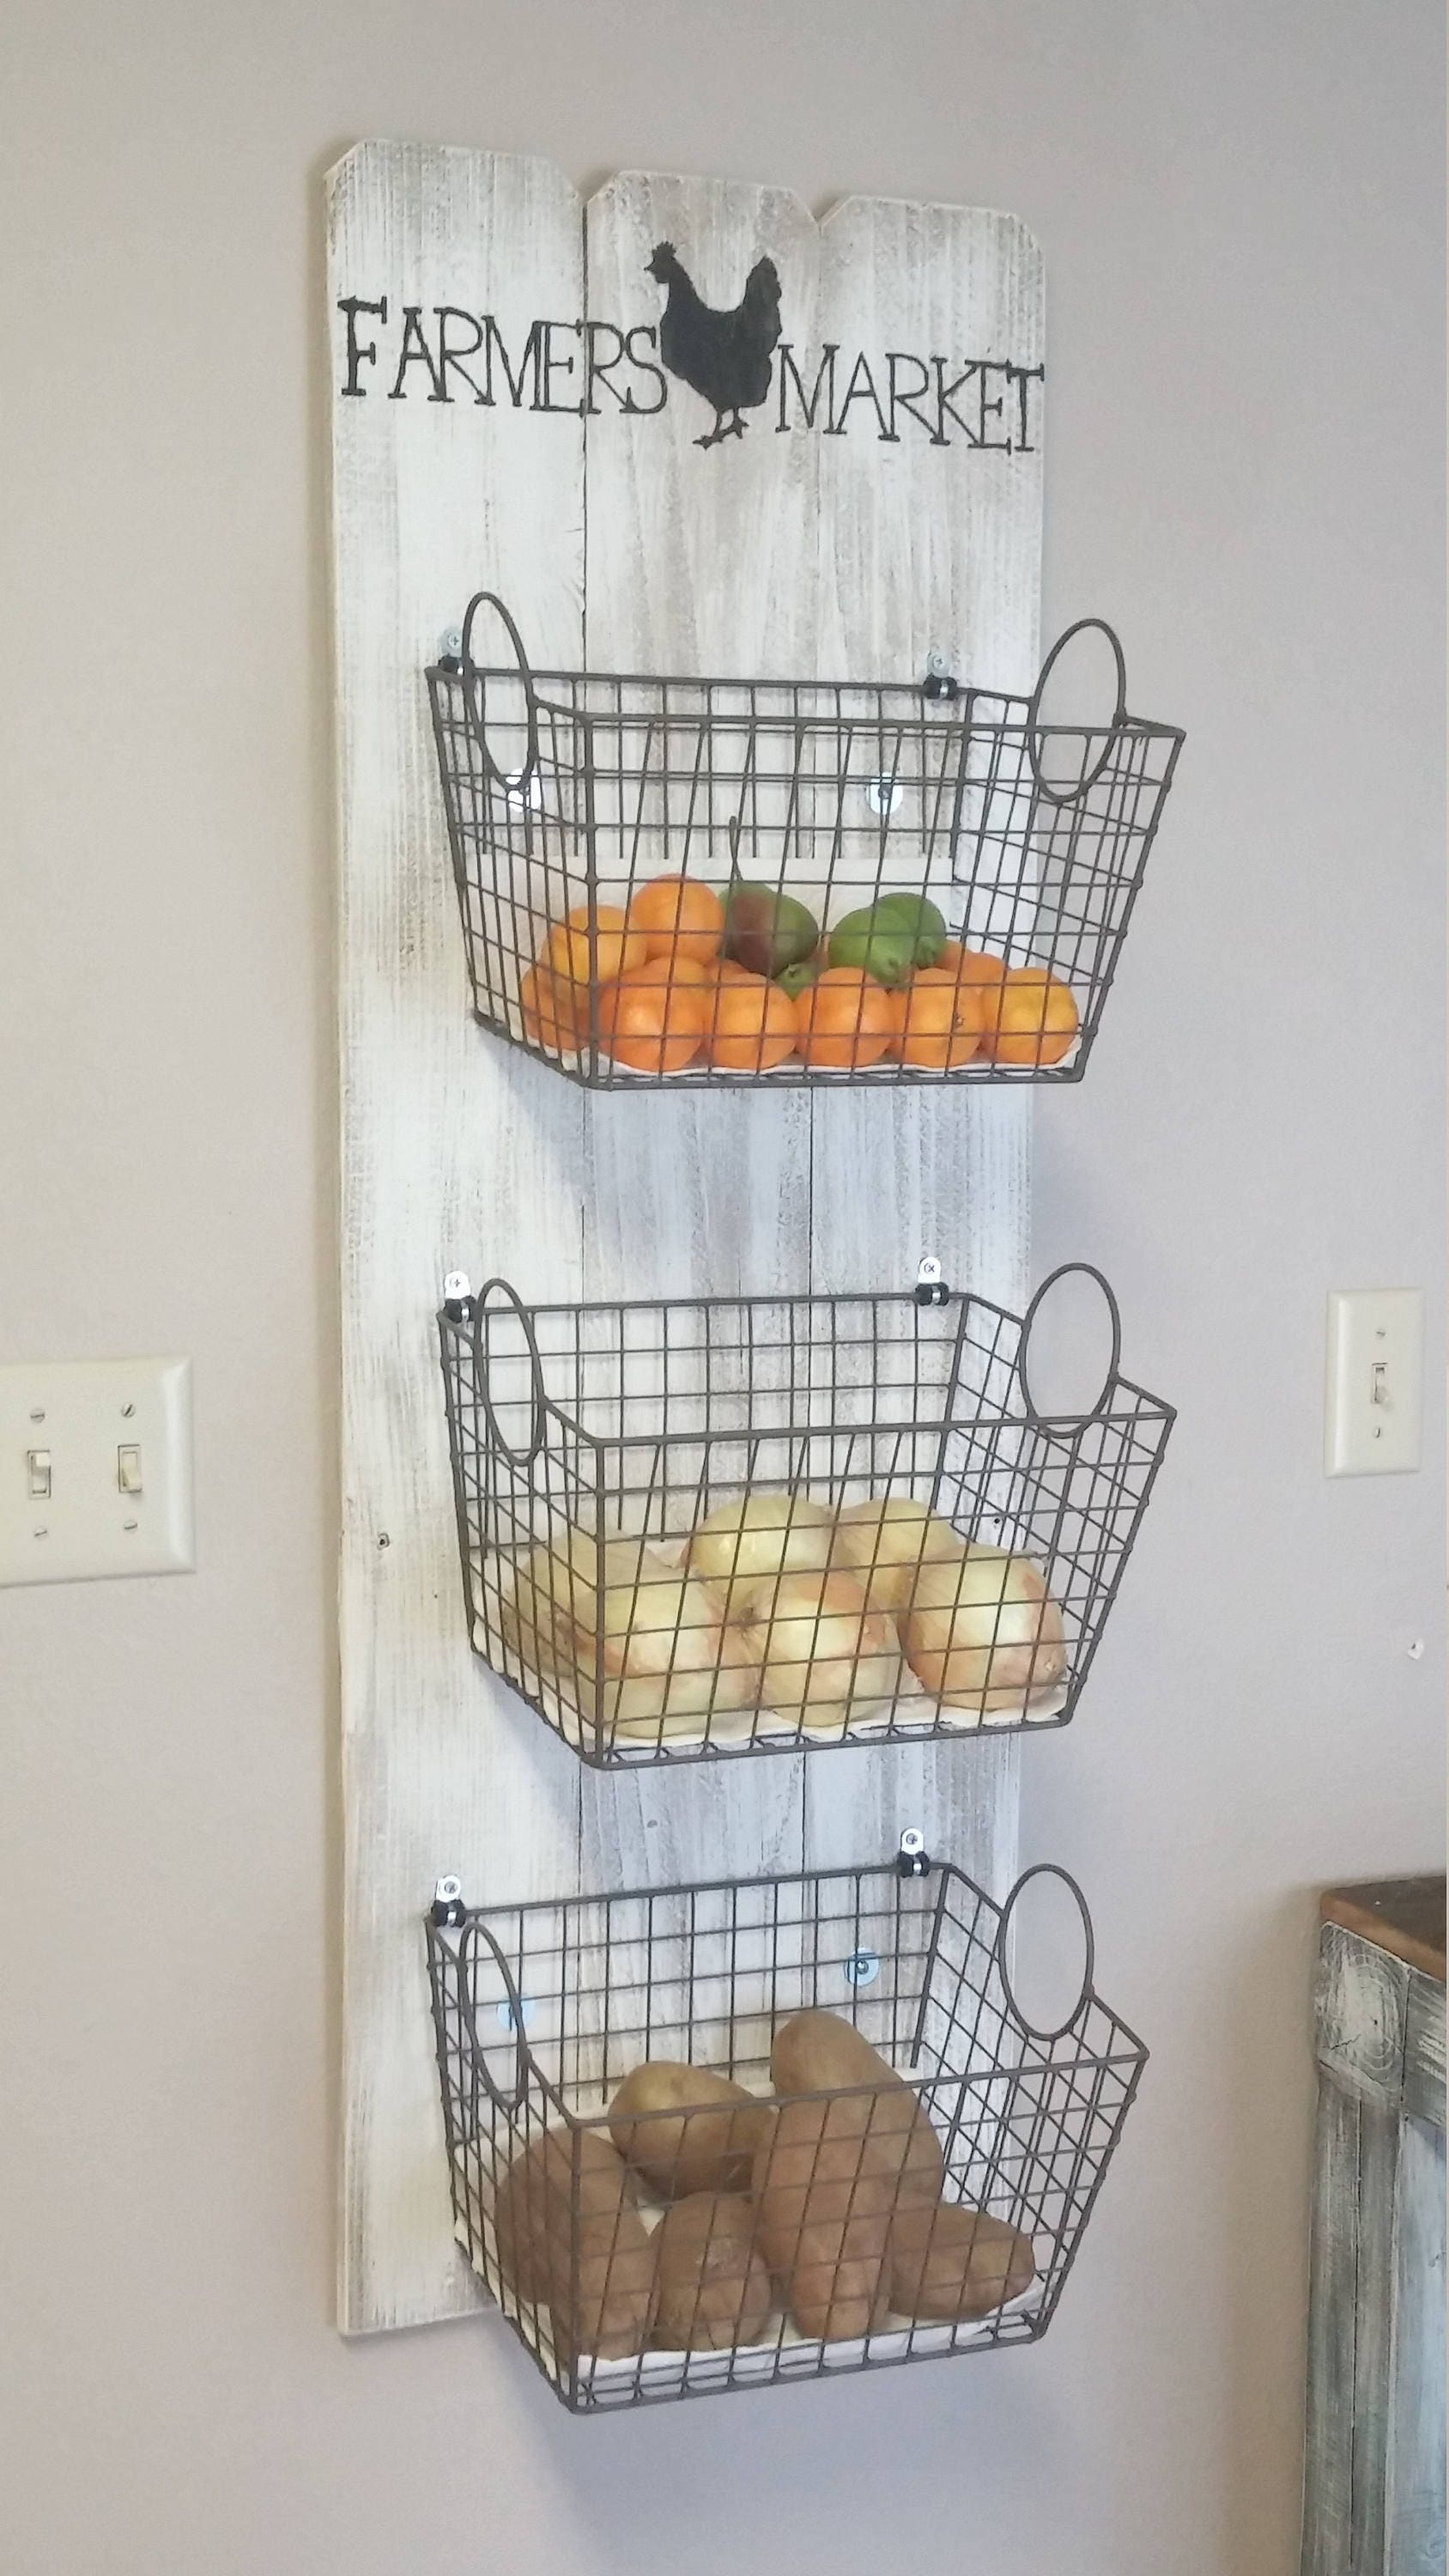 Farmers Market Basket Wall Decor, Farmers Market Produce Storage, Rustic  Produce Rack, Farmhouse Style Produce Rack, Rustic Kitchen Decor